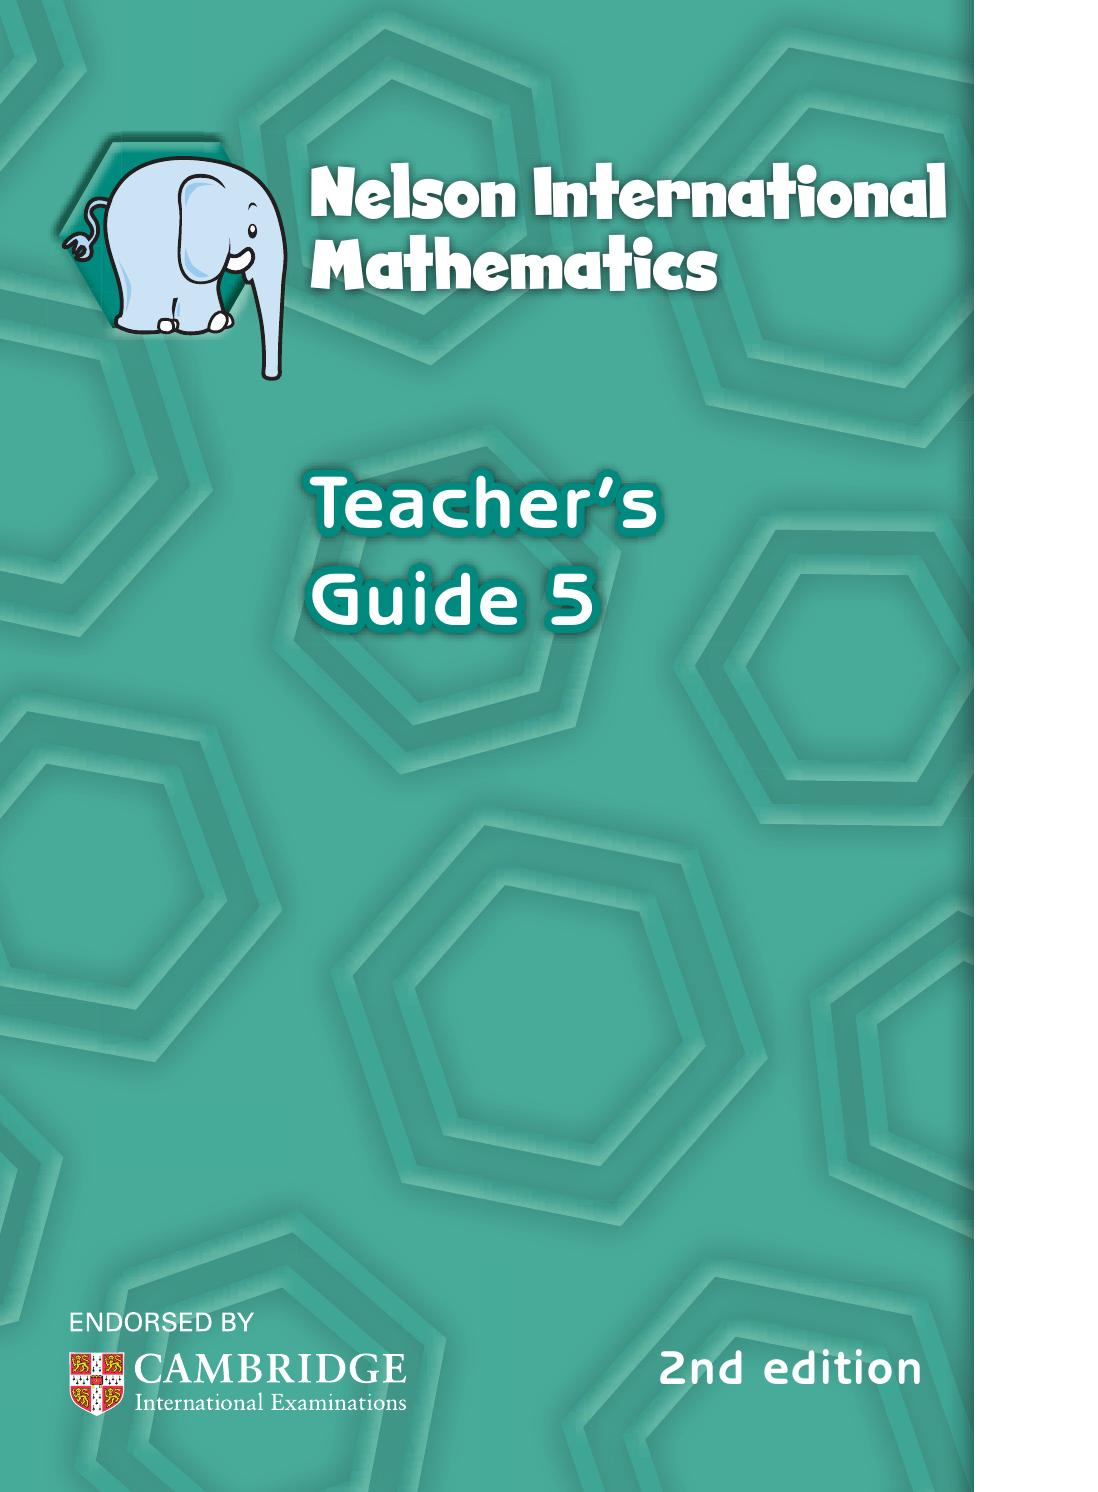 Nelson international maths teacher guide 5 by hany mufeid - issuu